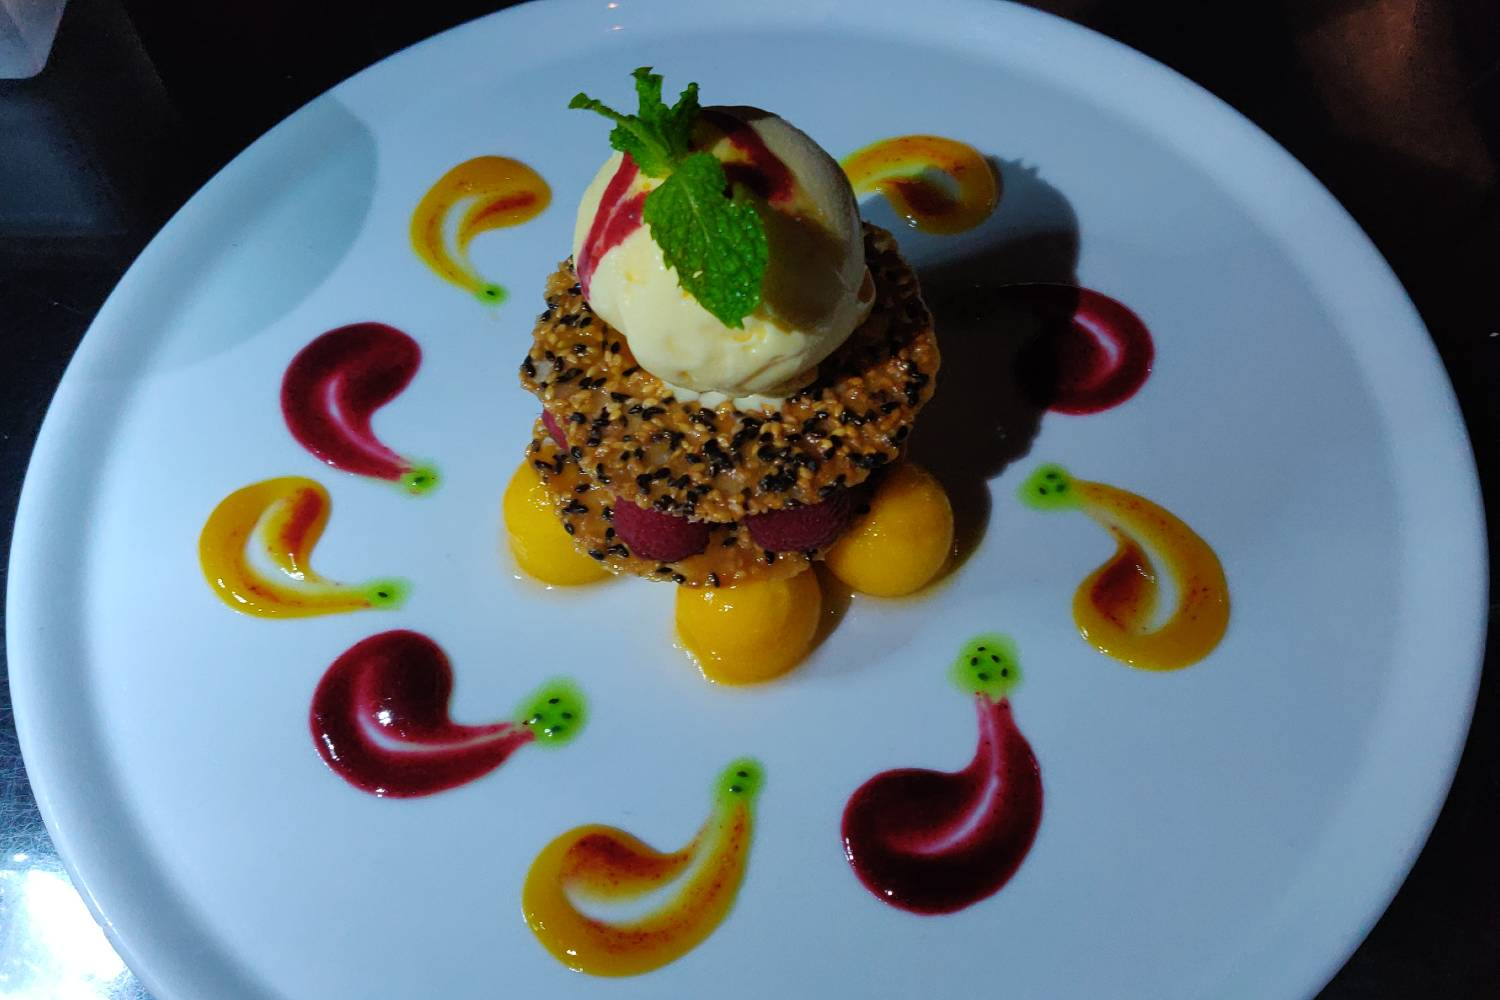 Raspberries and sesame crisp with passion fruit syrup and vanilla ice cream